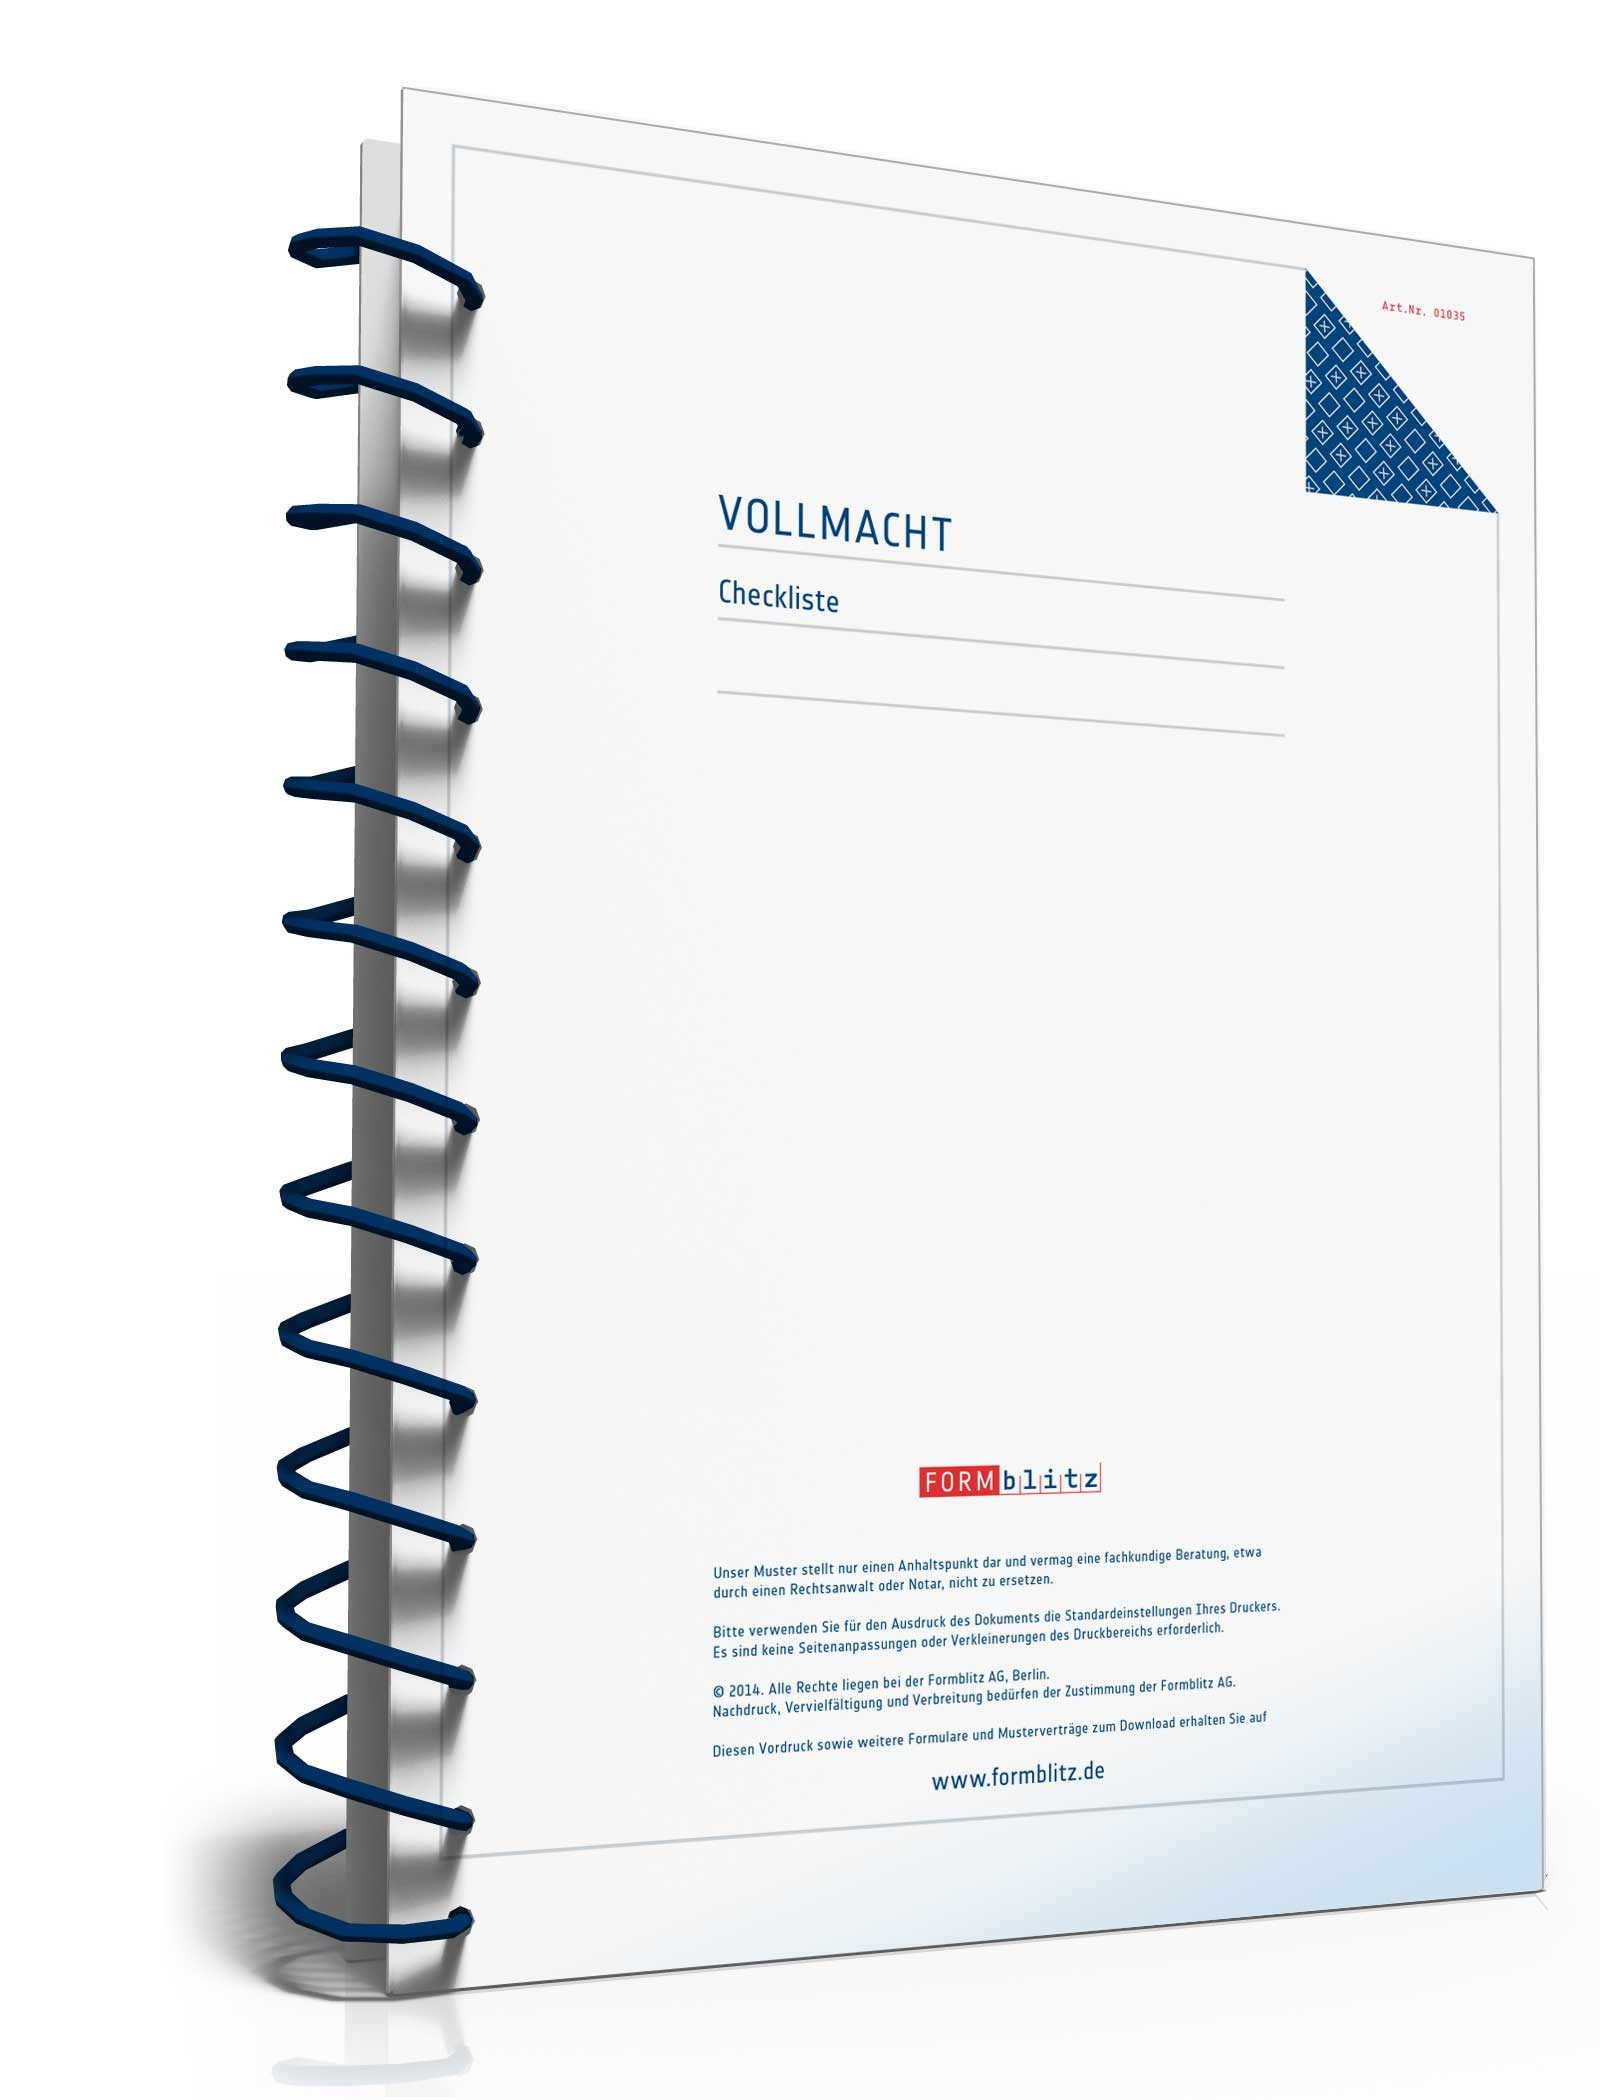 Checkliste Vollmacht Formular Zum Download